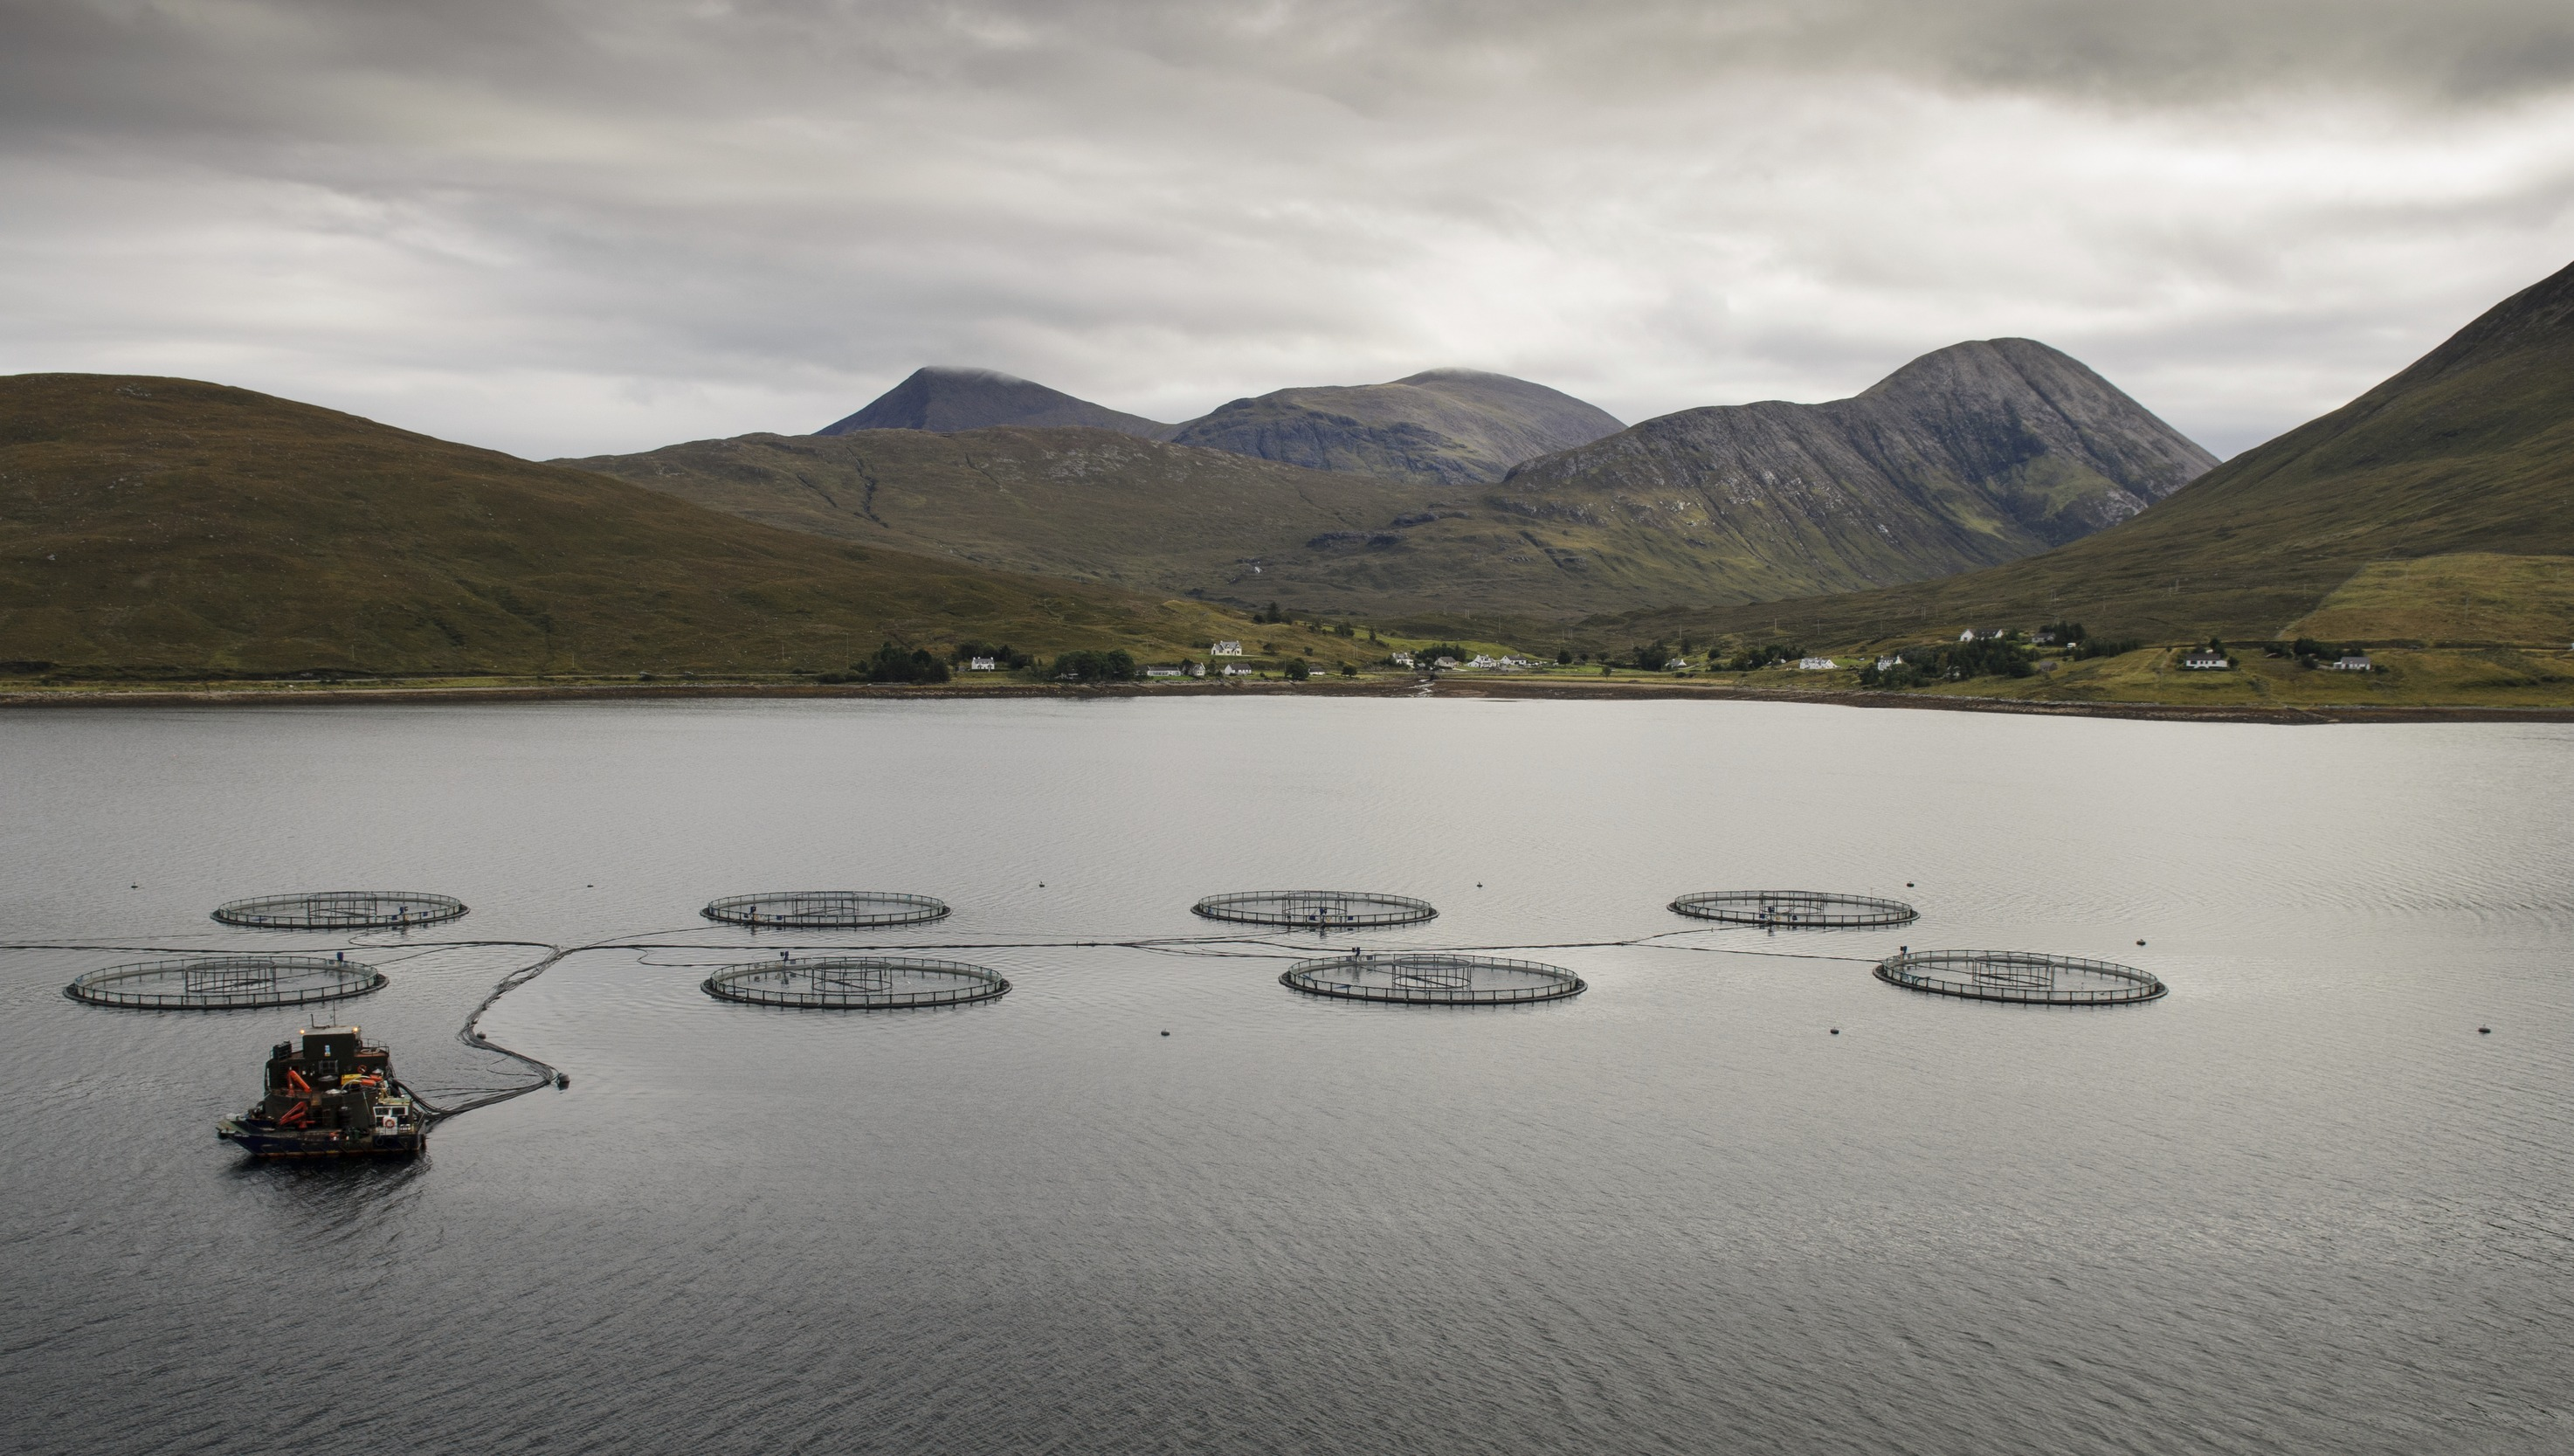 A Salmon Fish Farm In Loch Ainort On The Isle Of Skye In The Highlands Of Scotland. Foothills Of The Cuillin Mountains Form The Backdrop To The Sea Loch With An Array Of Circular Fish Cages.